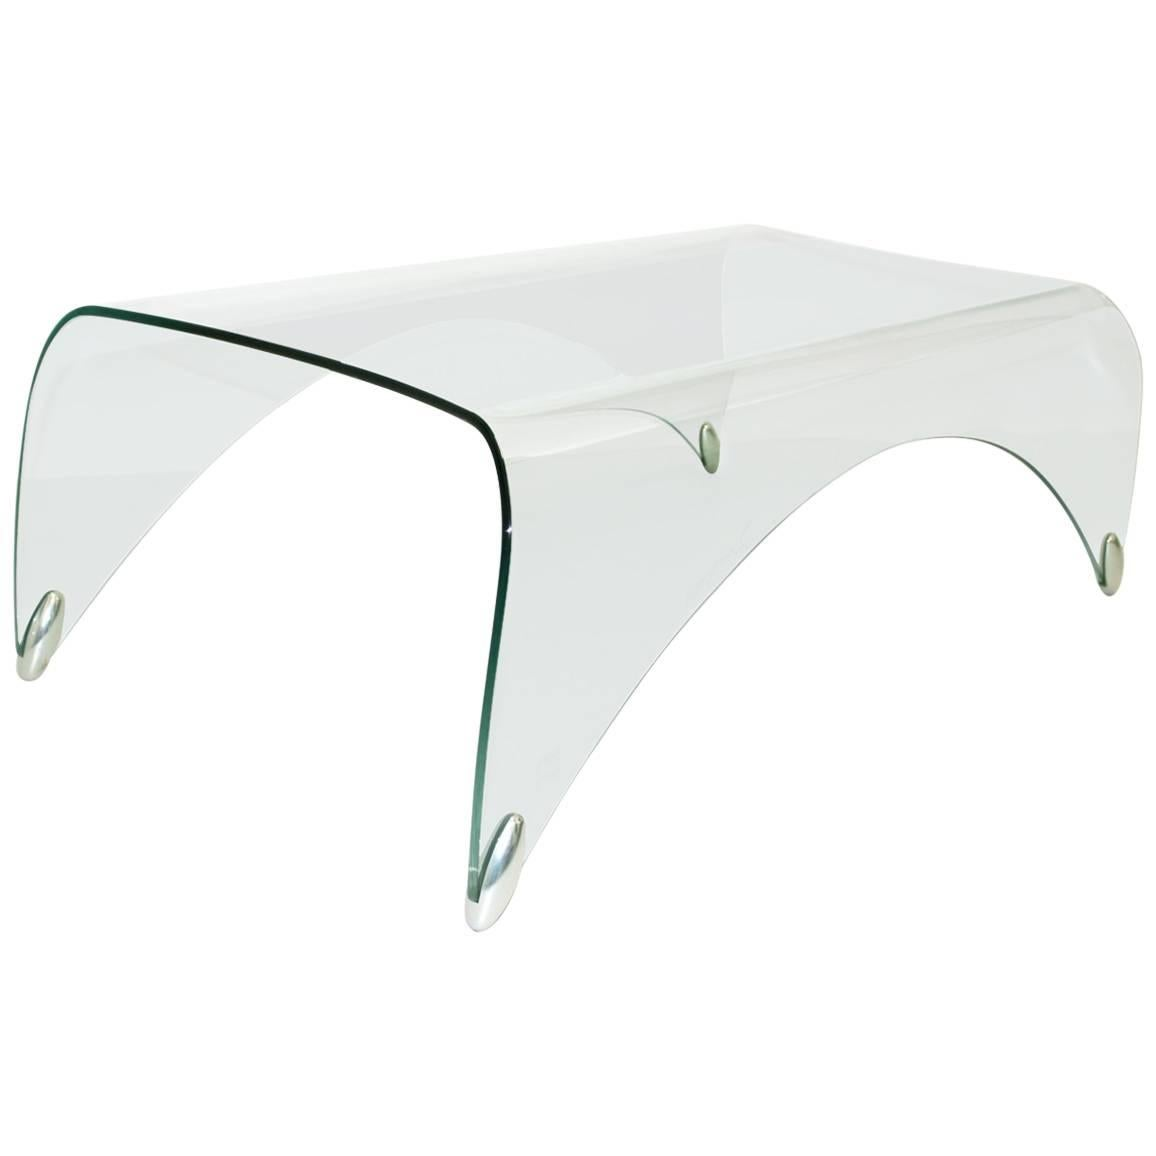 Glass Vintage Coffee Table by Massimo Iosa Ghini, 20th Century